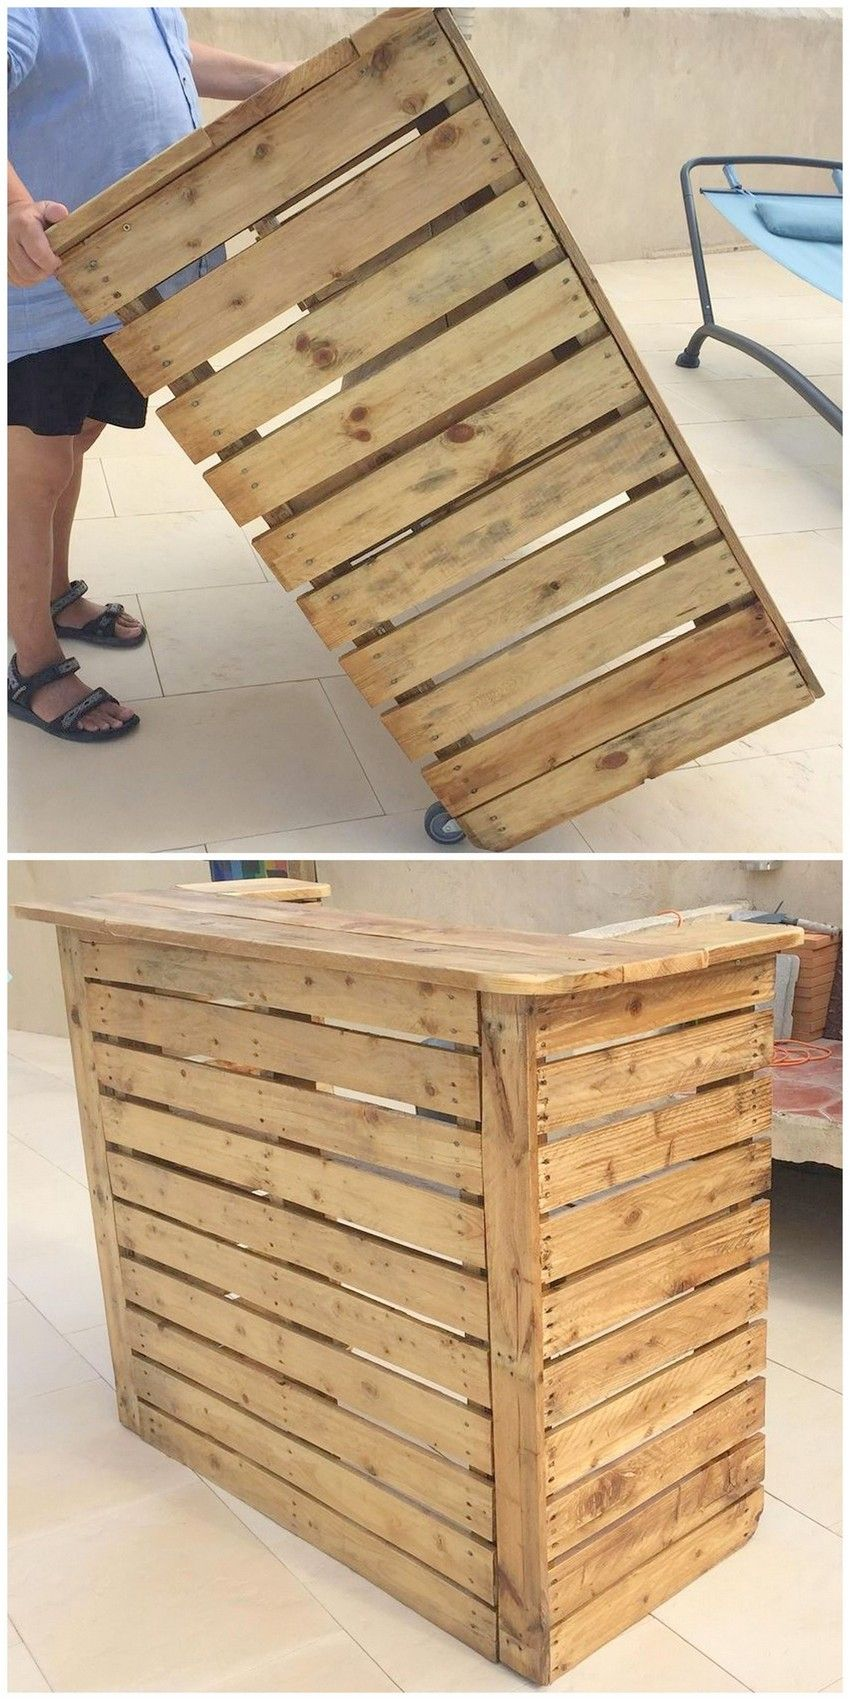 Creative Ideas For Wood Pallet Projects Easy Pallet Projects And Diy Wood Pallets Ideas Pallet Projects Easy Wood Pallet Projects Wood Pallet Crafts